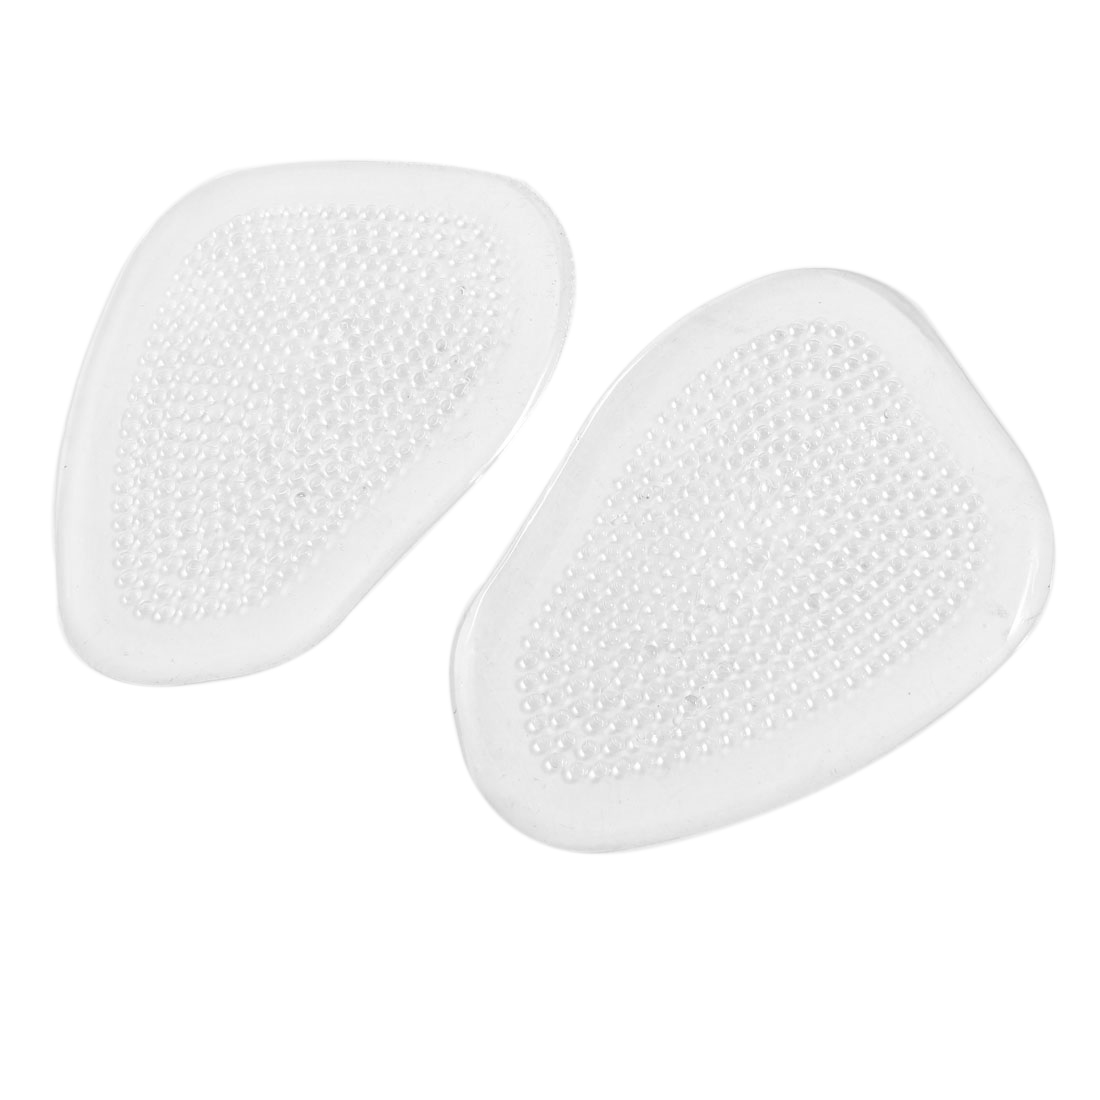 1 Pair Antislip Soft Silicone Ball Of Foot Cushion Metatarsal Pad